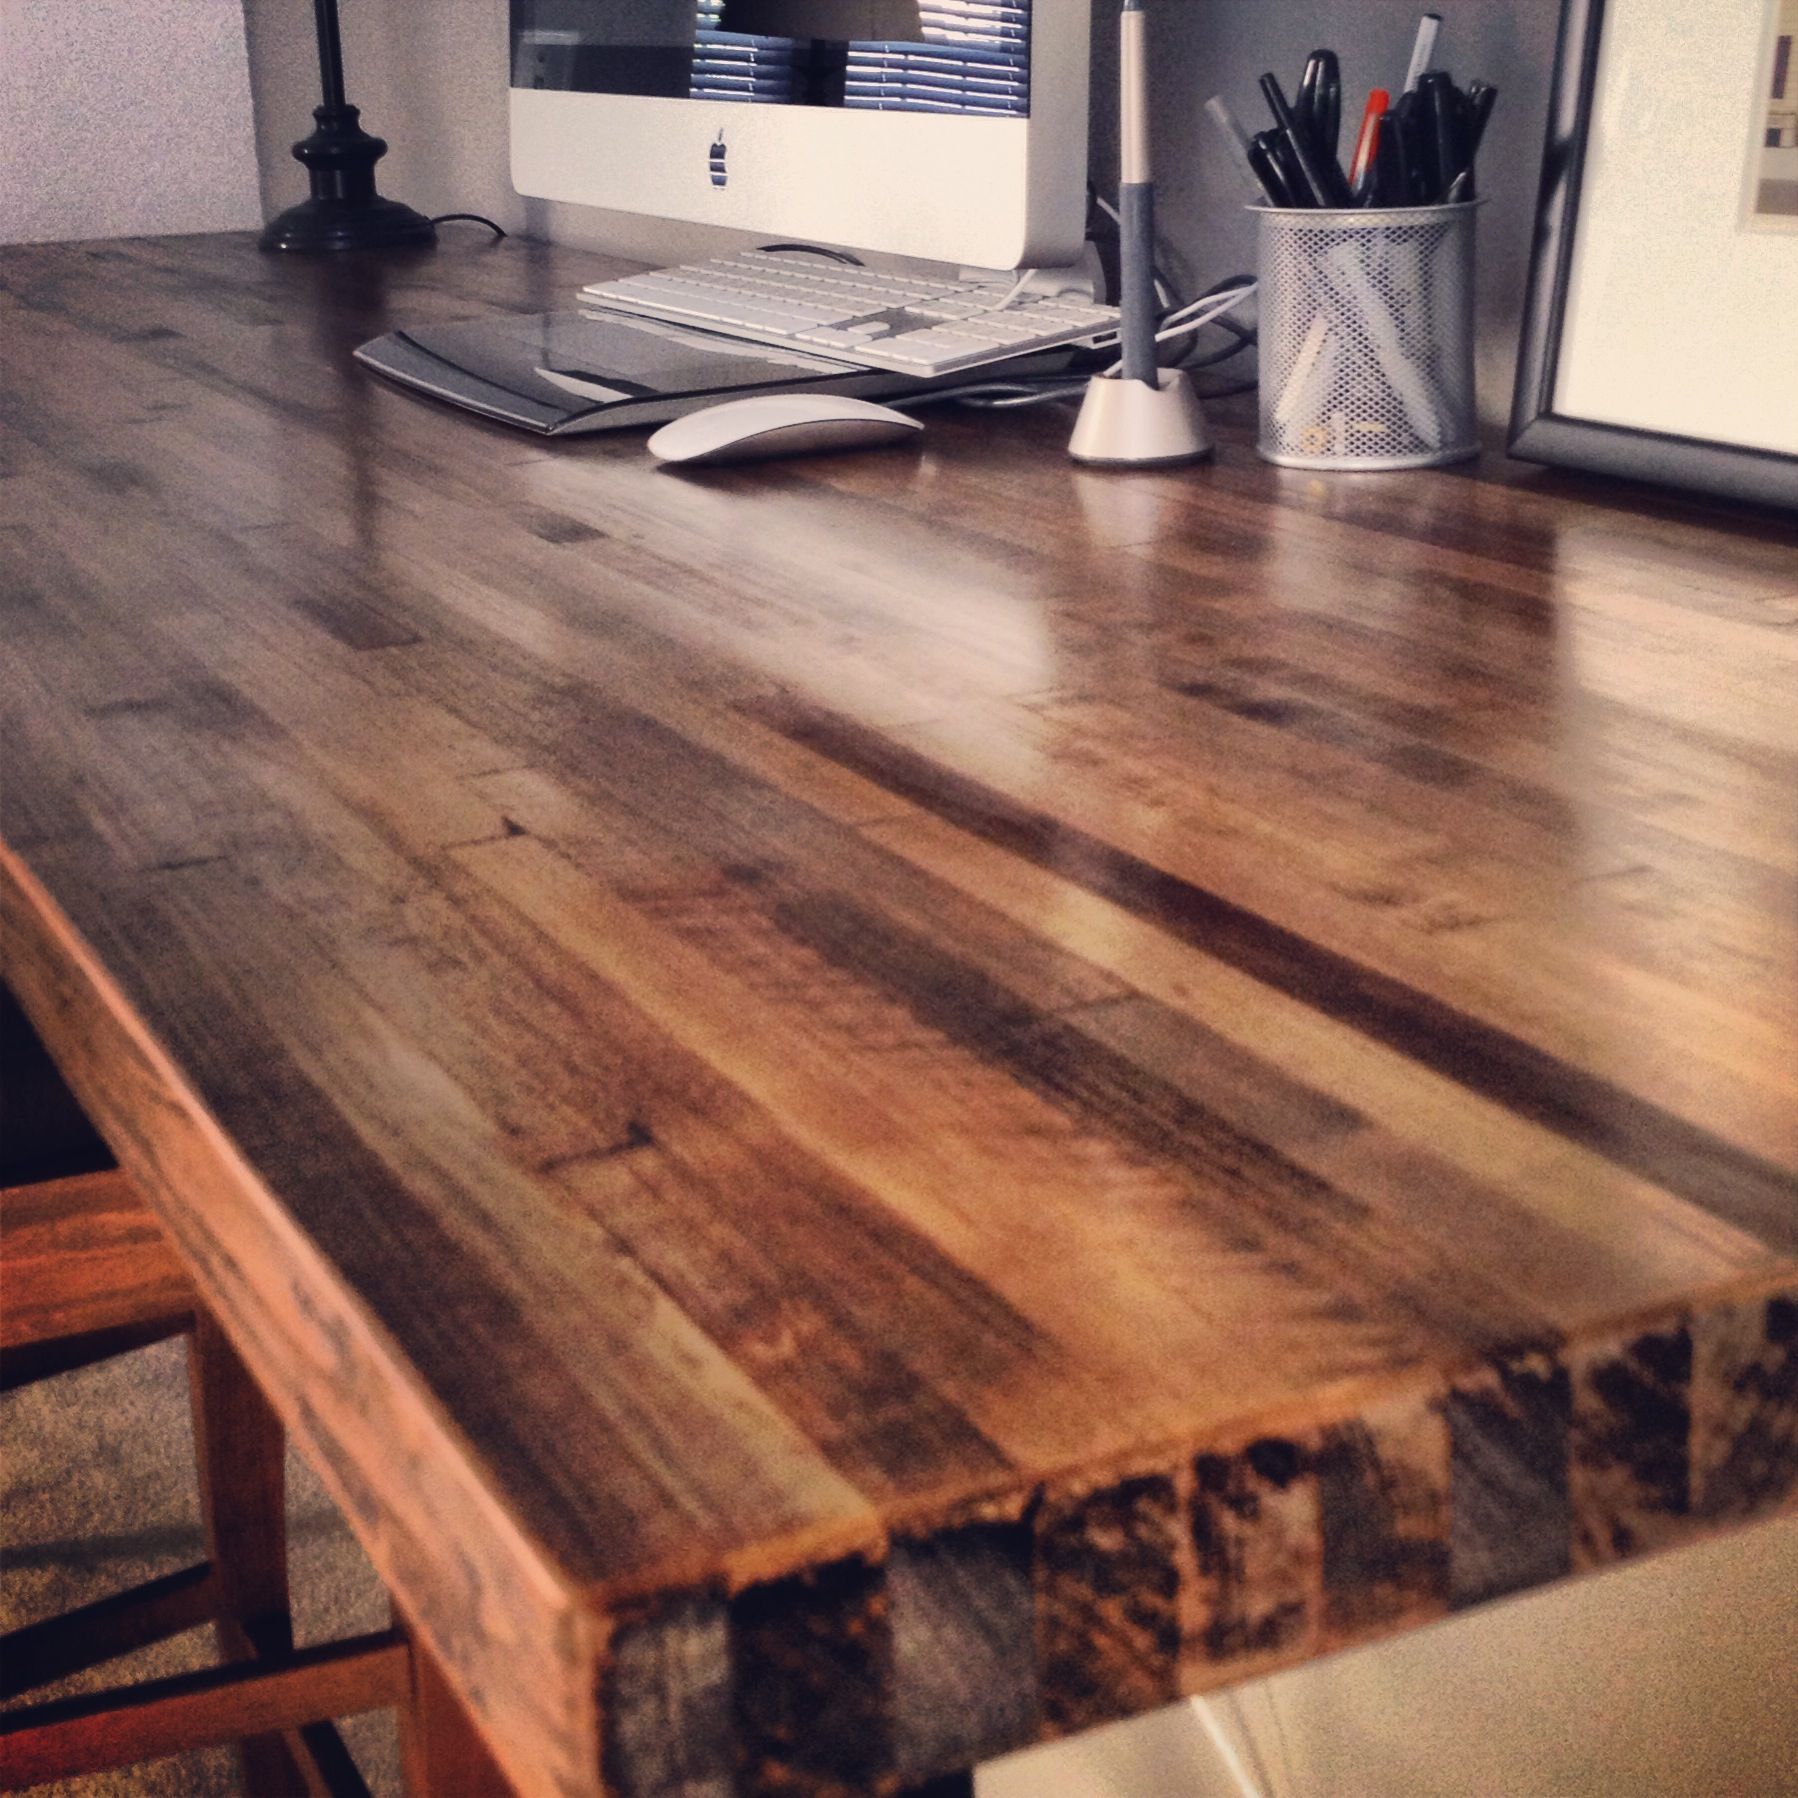 7ft x 2ft butcher block desktop. 2 coats of minwax stain ...